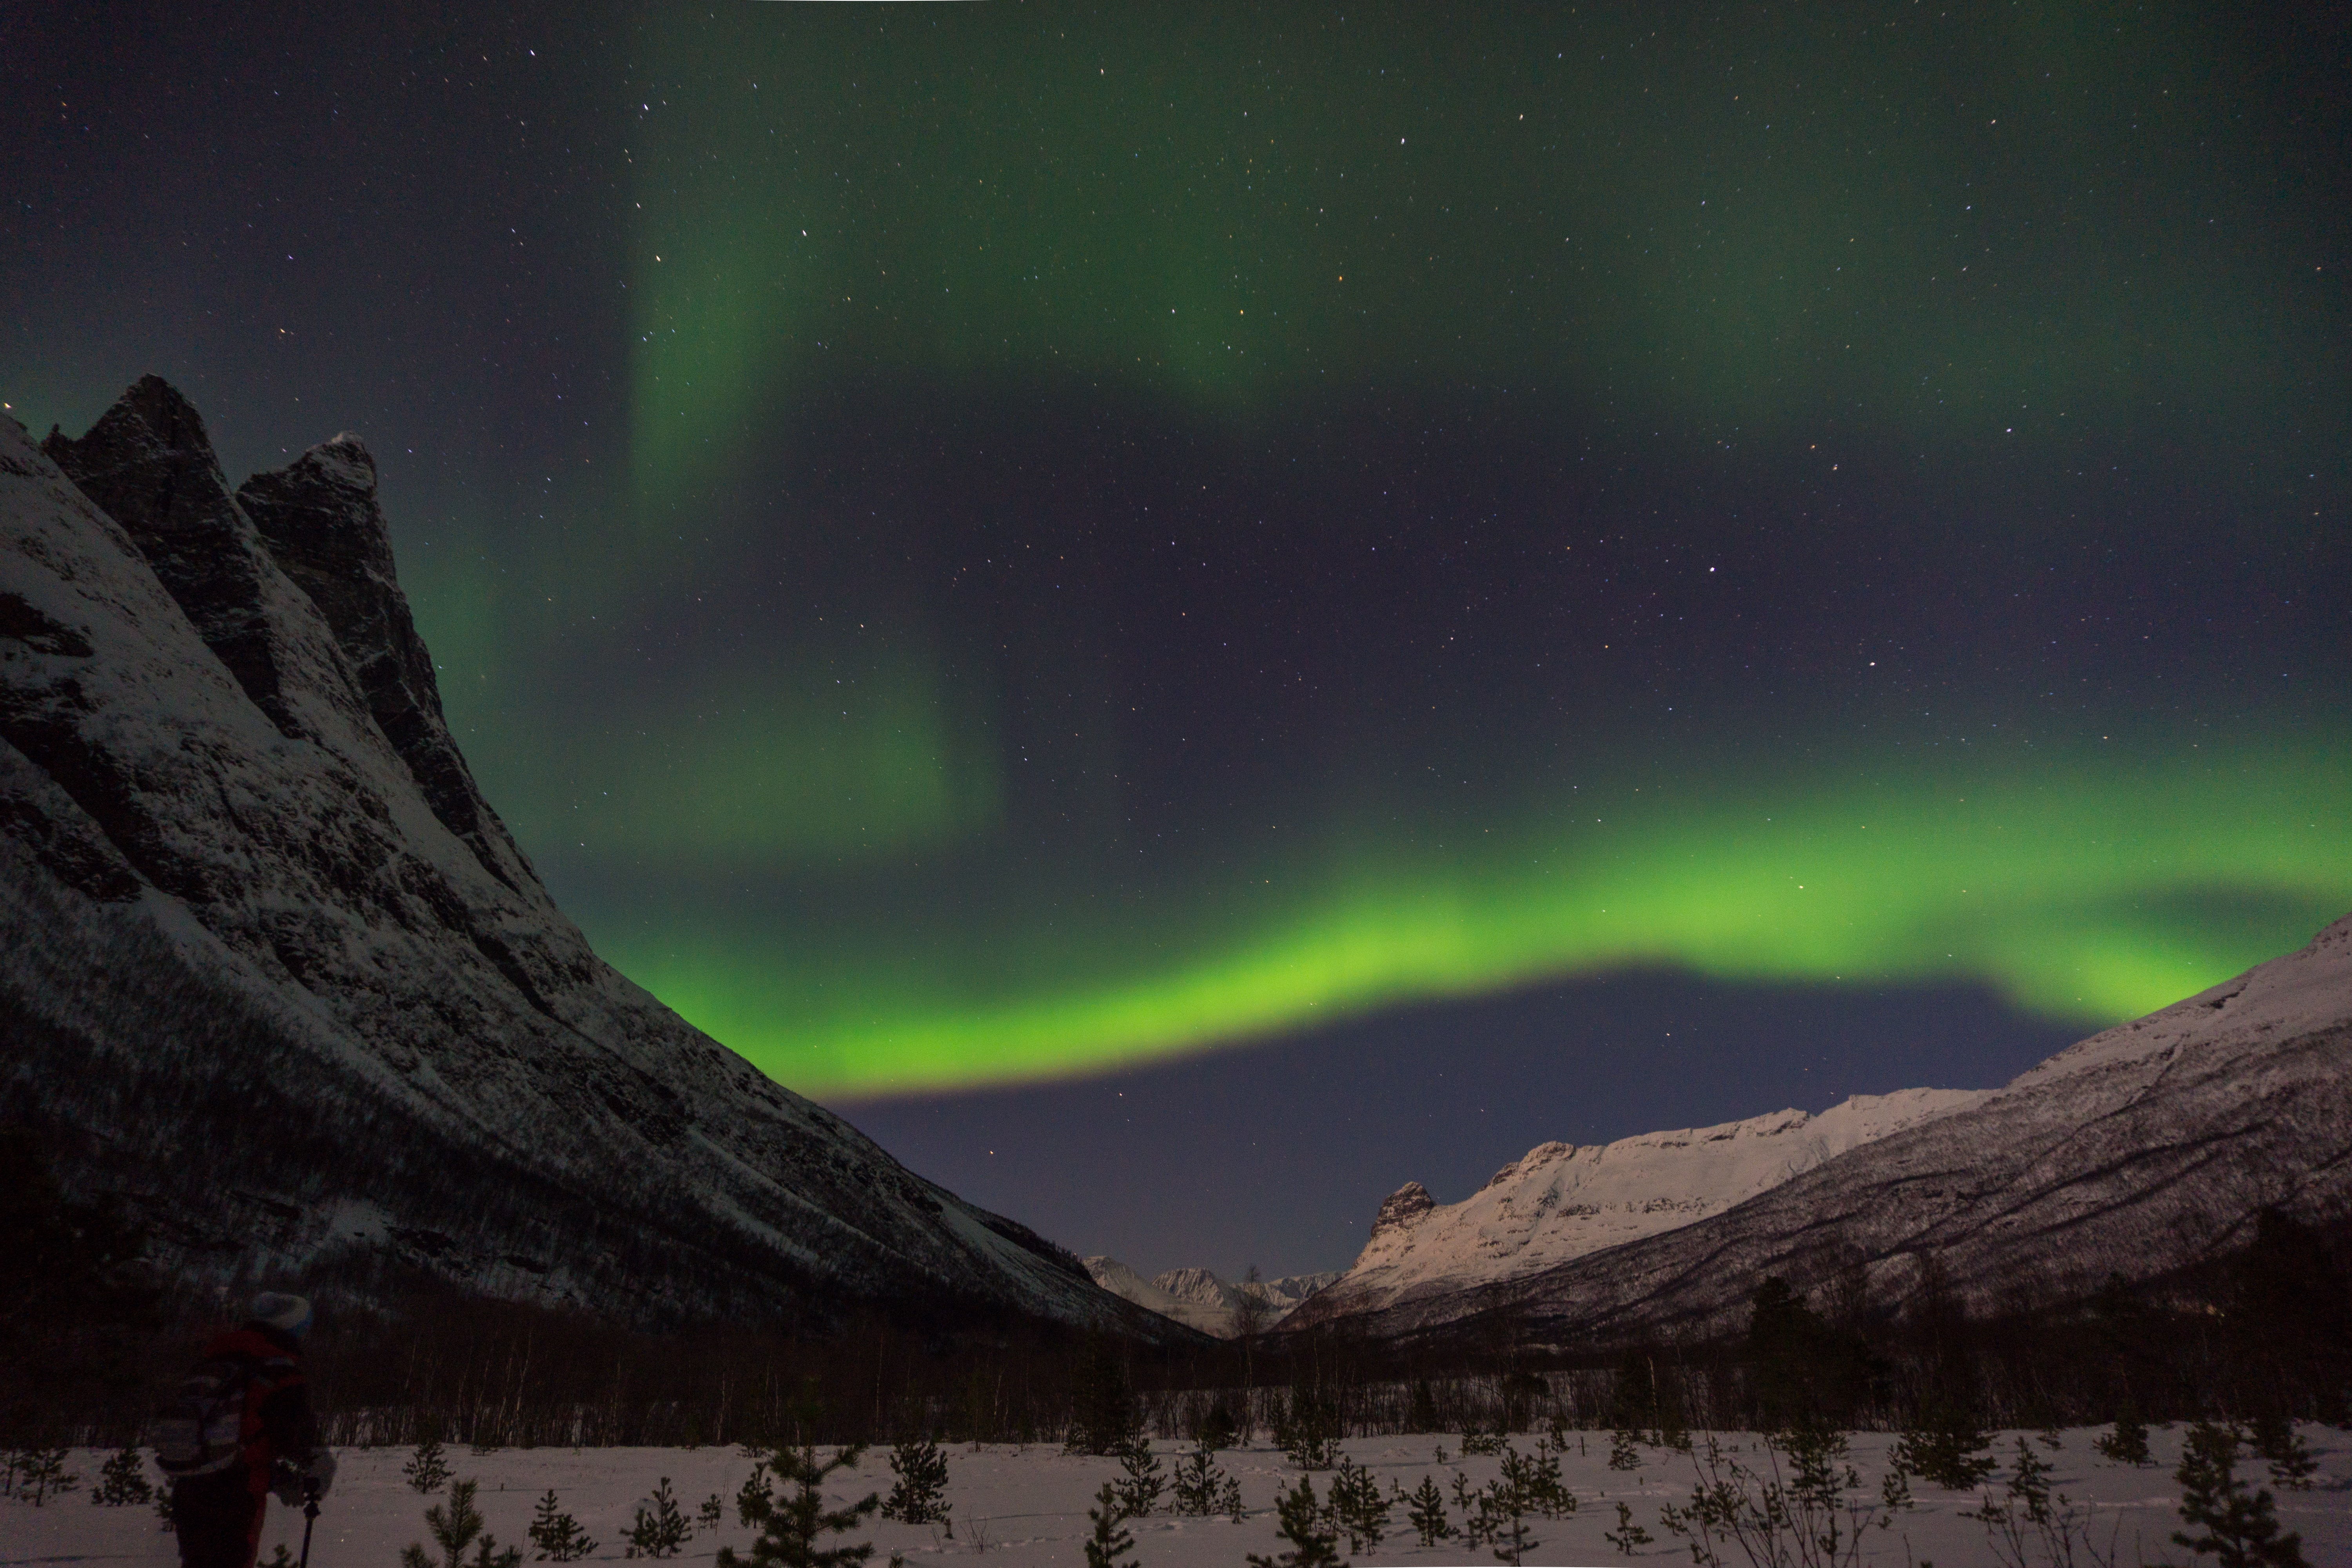 green aurora lights above snow-capped mountain